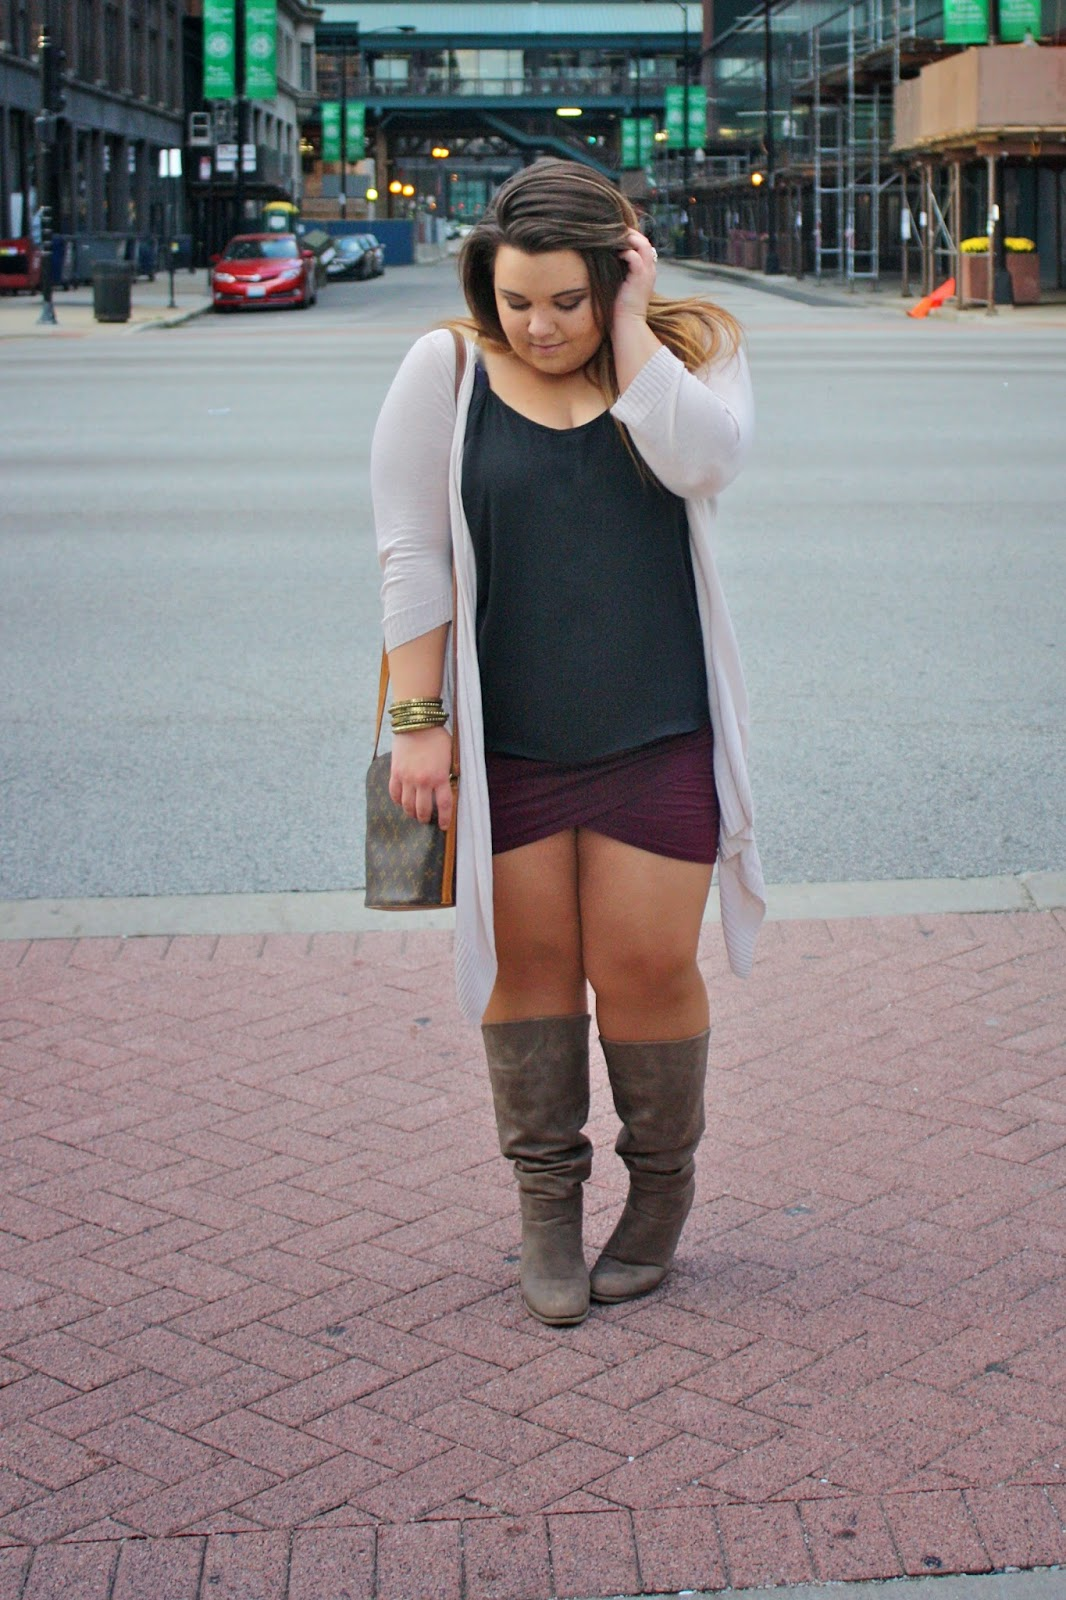 fatshion, fashion blogger, fat girl fashion, Natalie Craig, natalie in the city, plus size fashion blogger, curvy fashionista, thick girls, skirt and boots, overused cardigan, long cardigan, louis vuitton, forever 21, chicago, petal skirt, envelope skirt, ombre hair